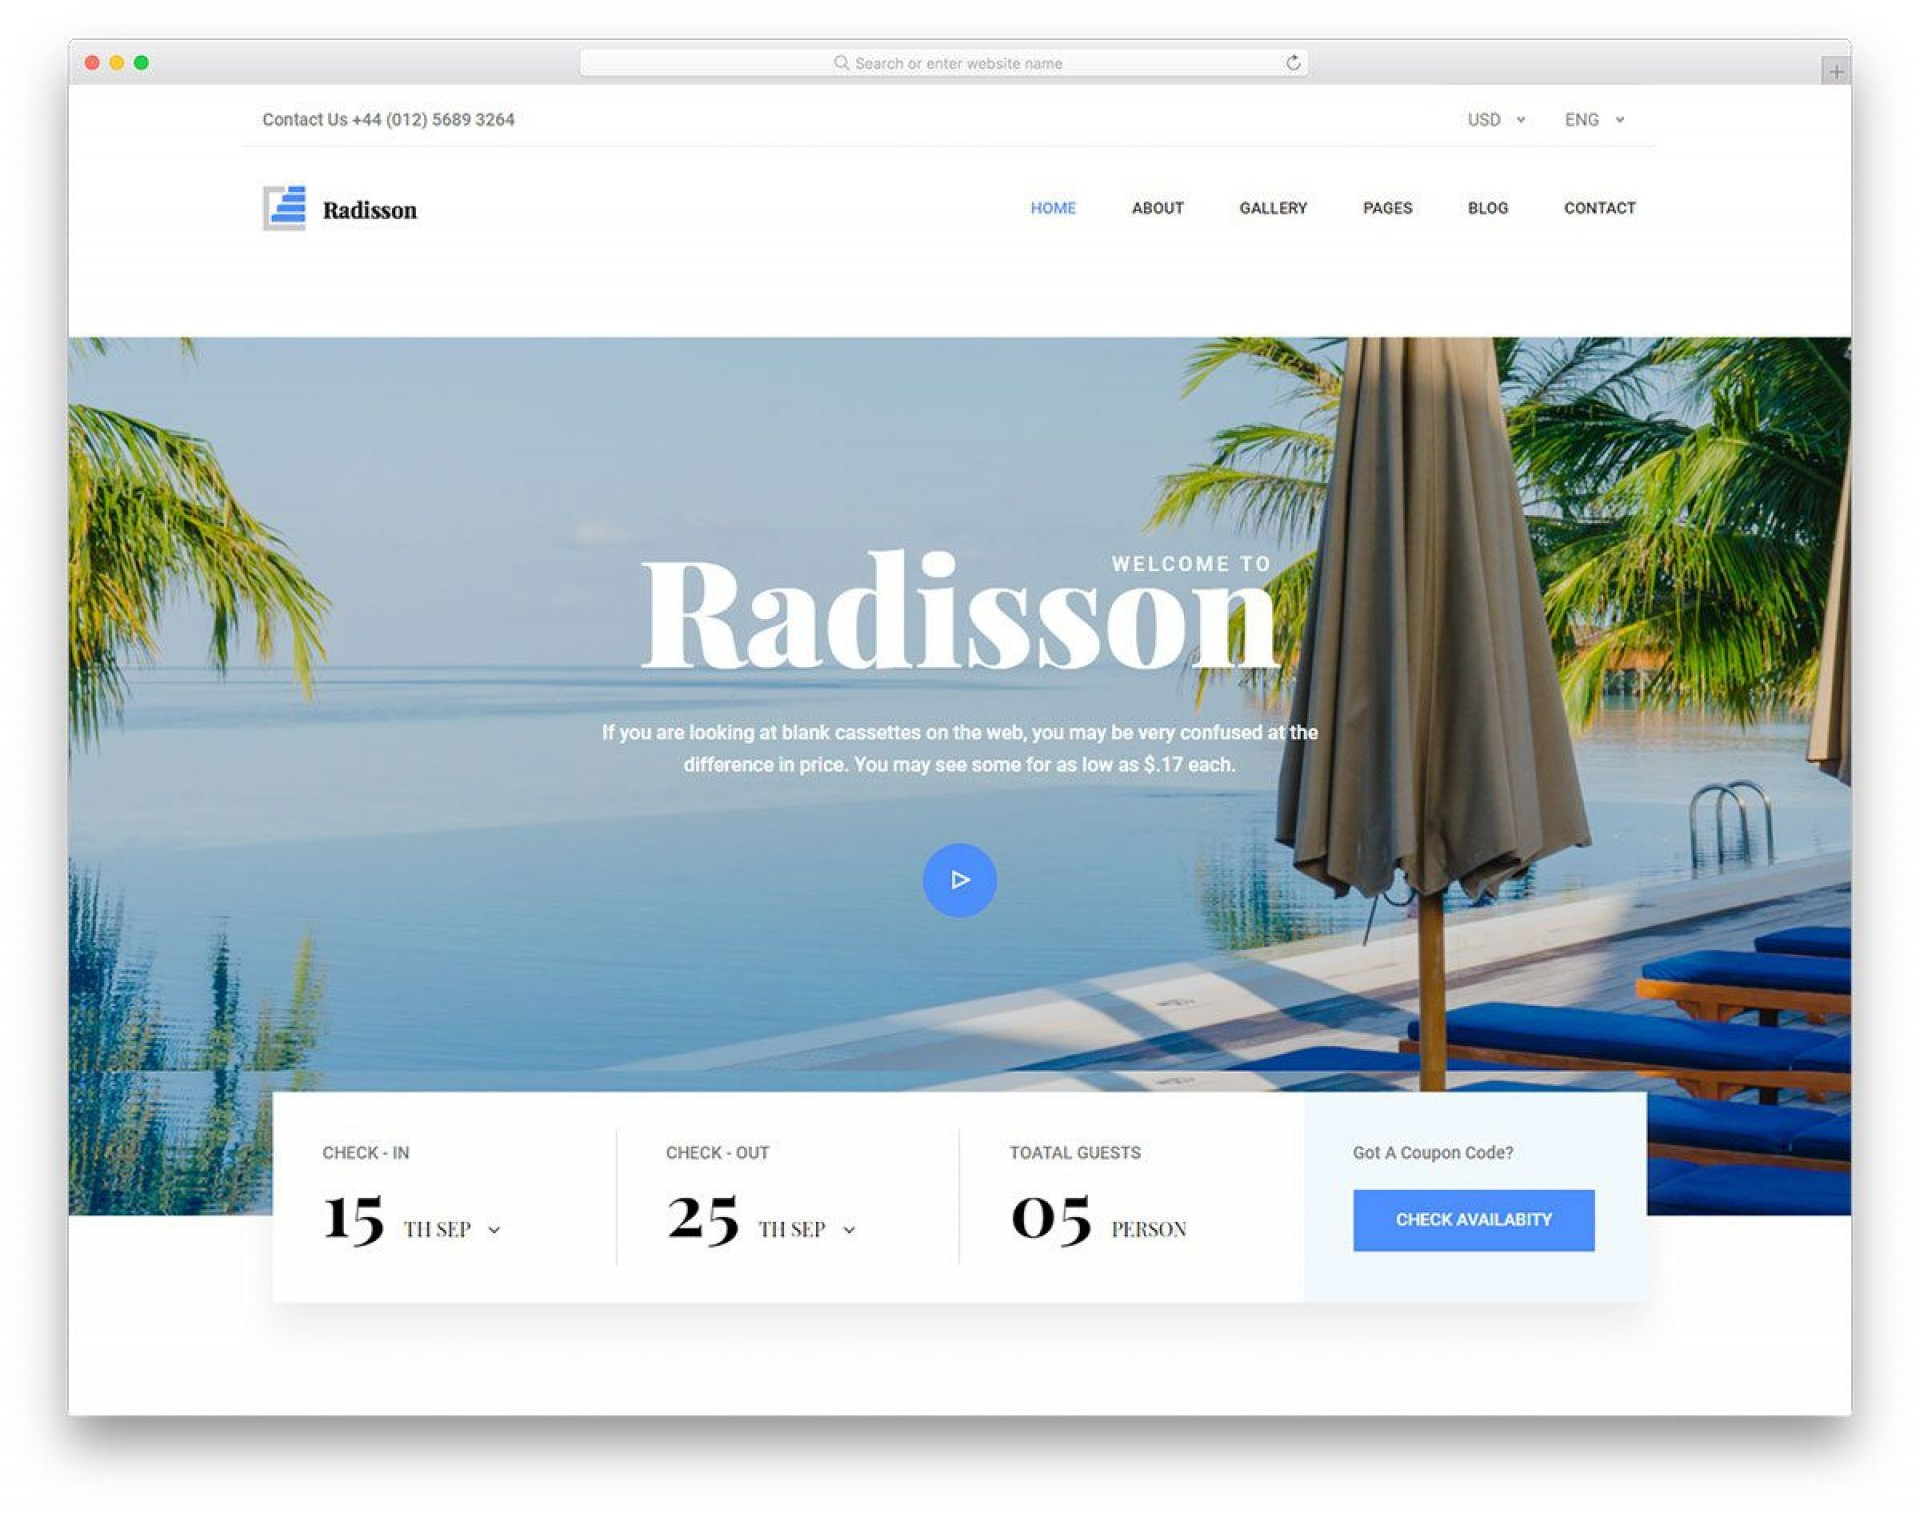 007 Sensational Hotel Website Template Html Free Download Concept  With Cs Responsive Jquery And Restaurant1920